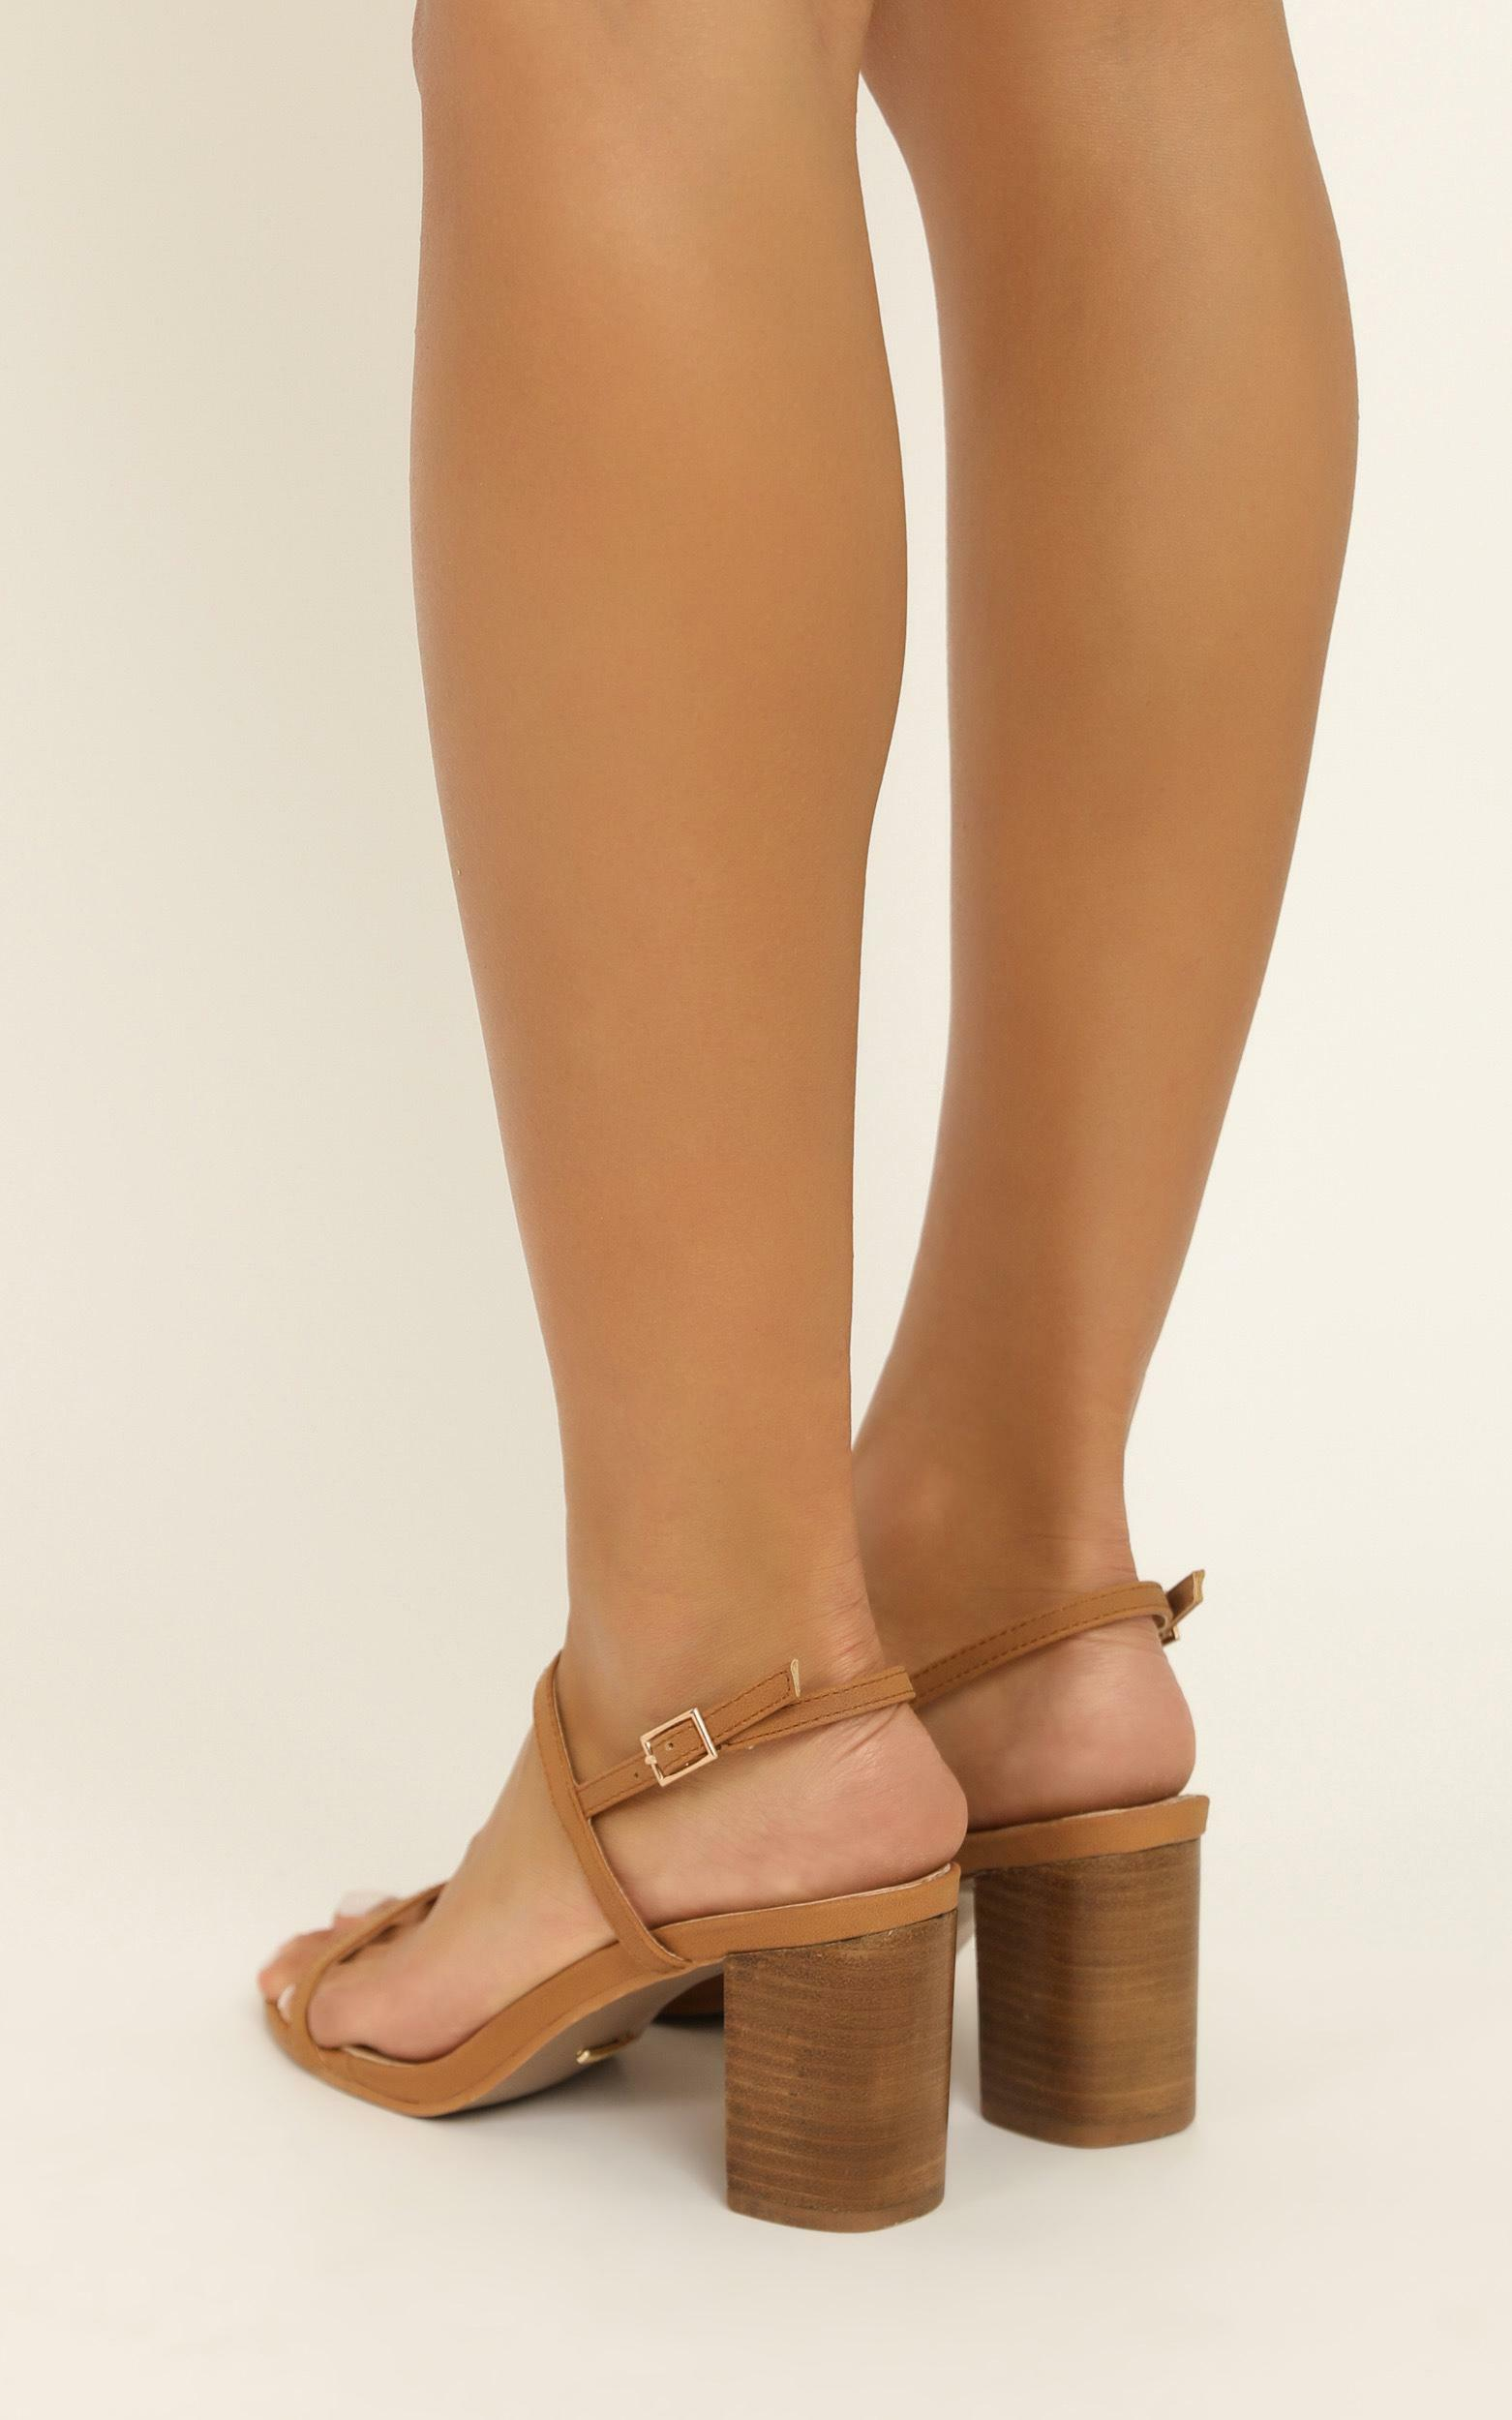 Showpo X Billini - Flores heels in tan nubuck - 10, Tan, hi-res image number null